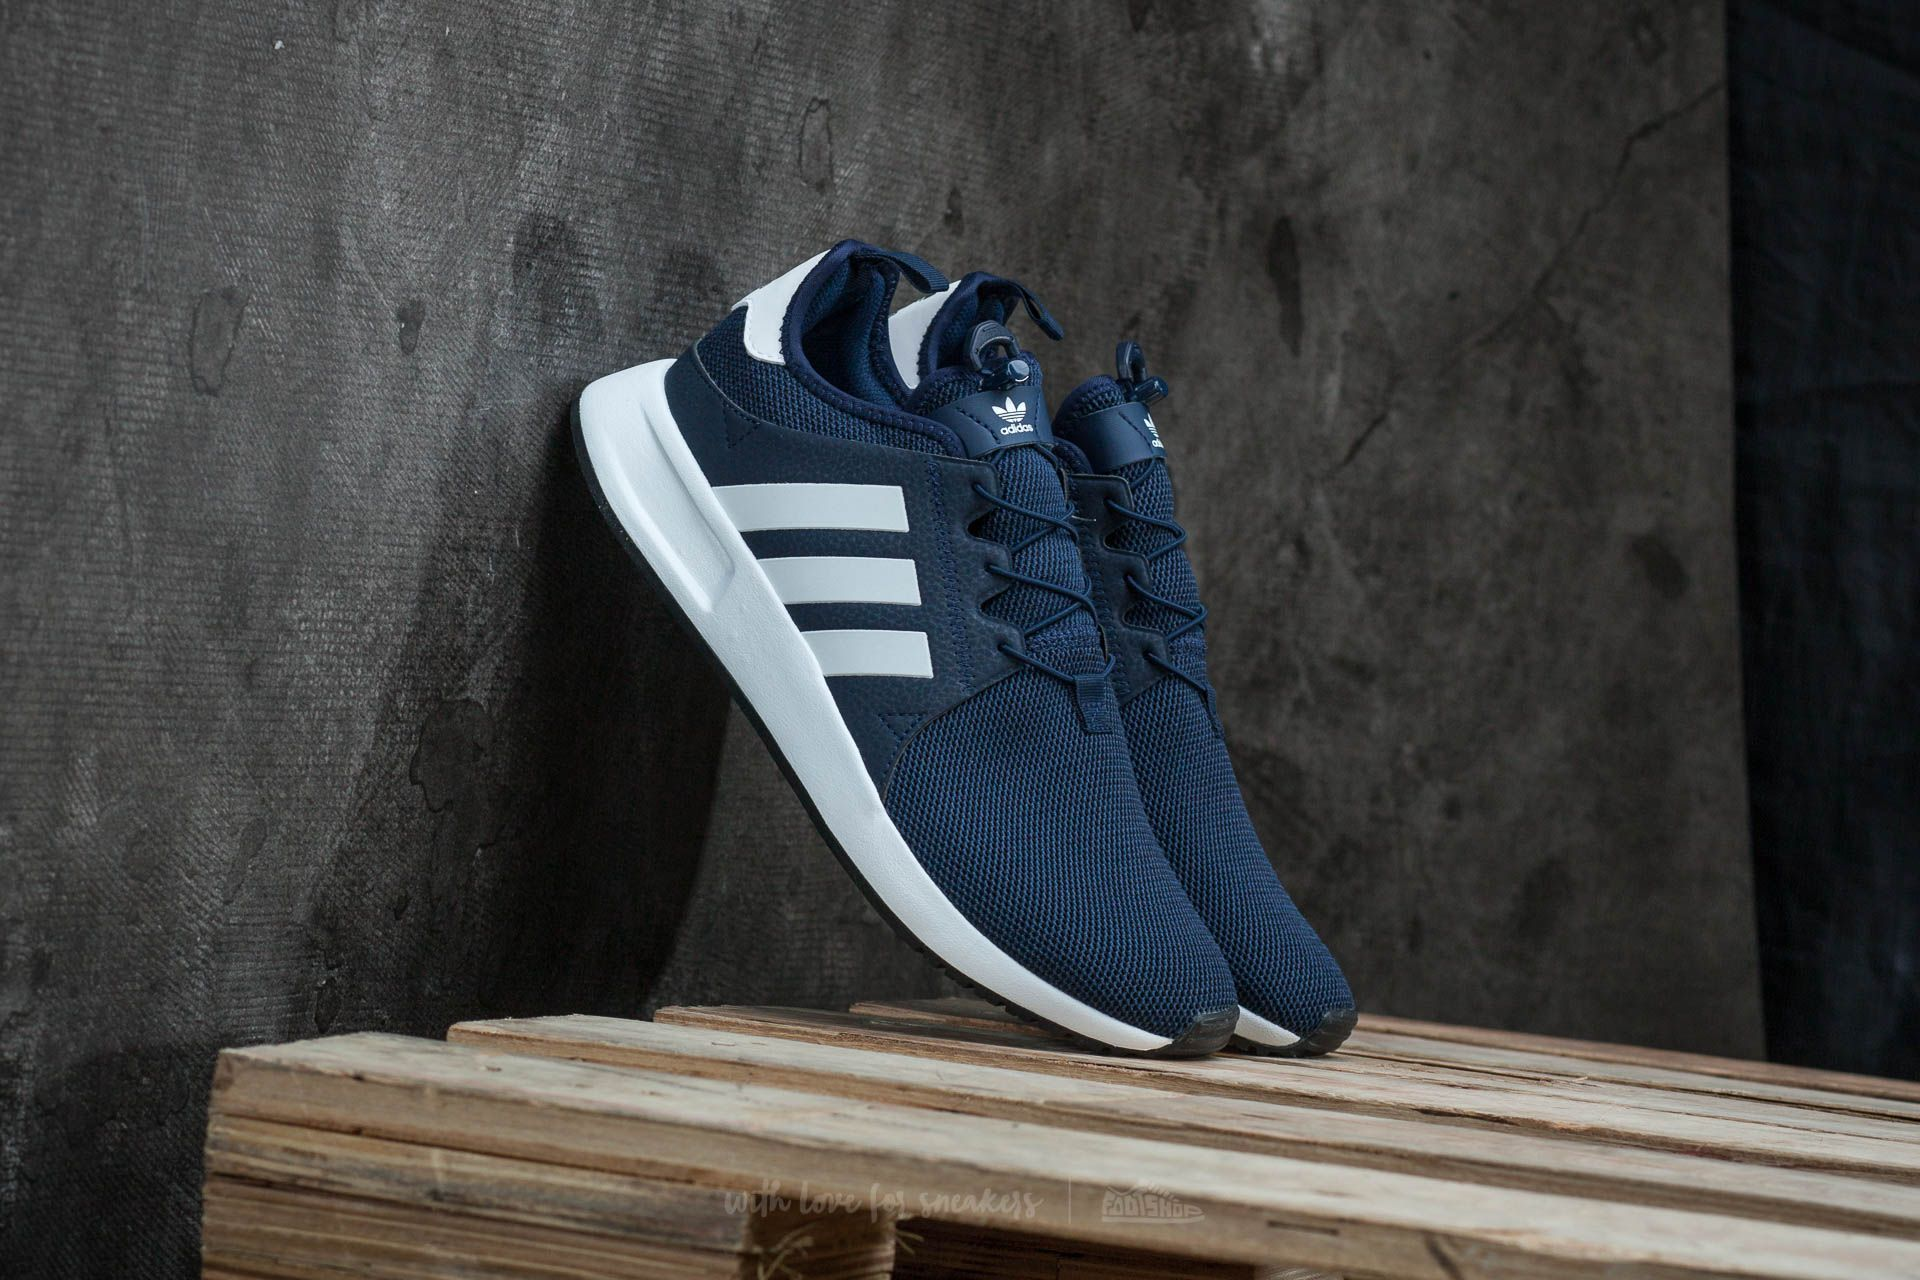 new arrival 698d3 b9764 adidas X_PLR Collegiate Navy/Footwear White/Core Black